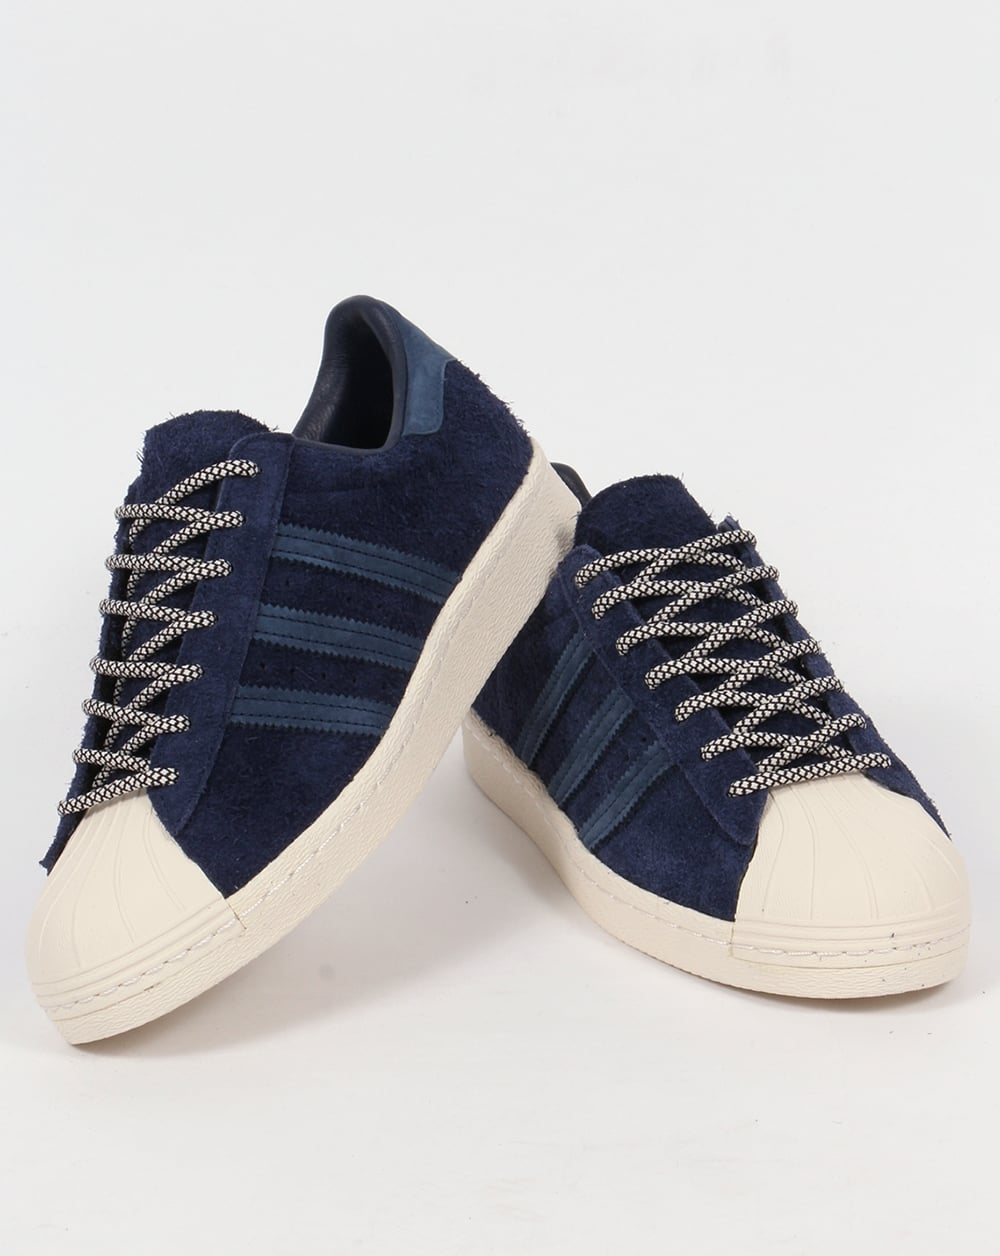 df1e6da209a9 Adidas Superstar 80s Trainers Navy Mineral Blue White